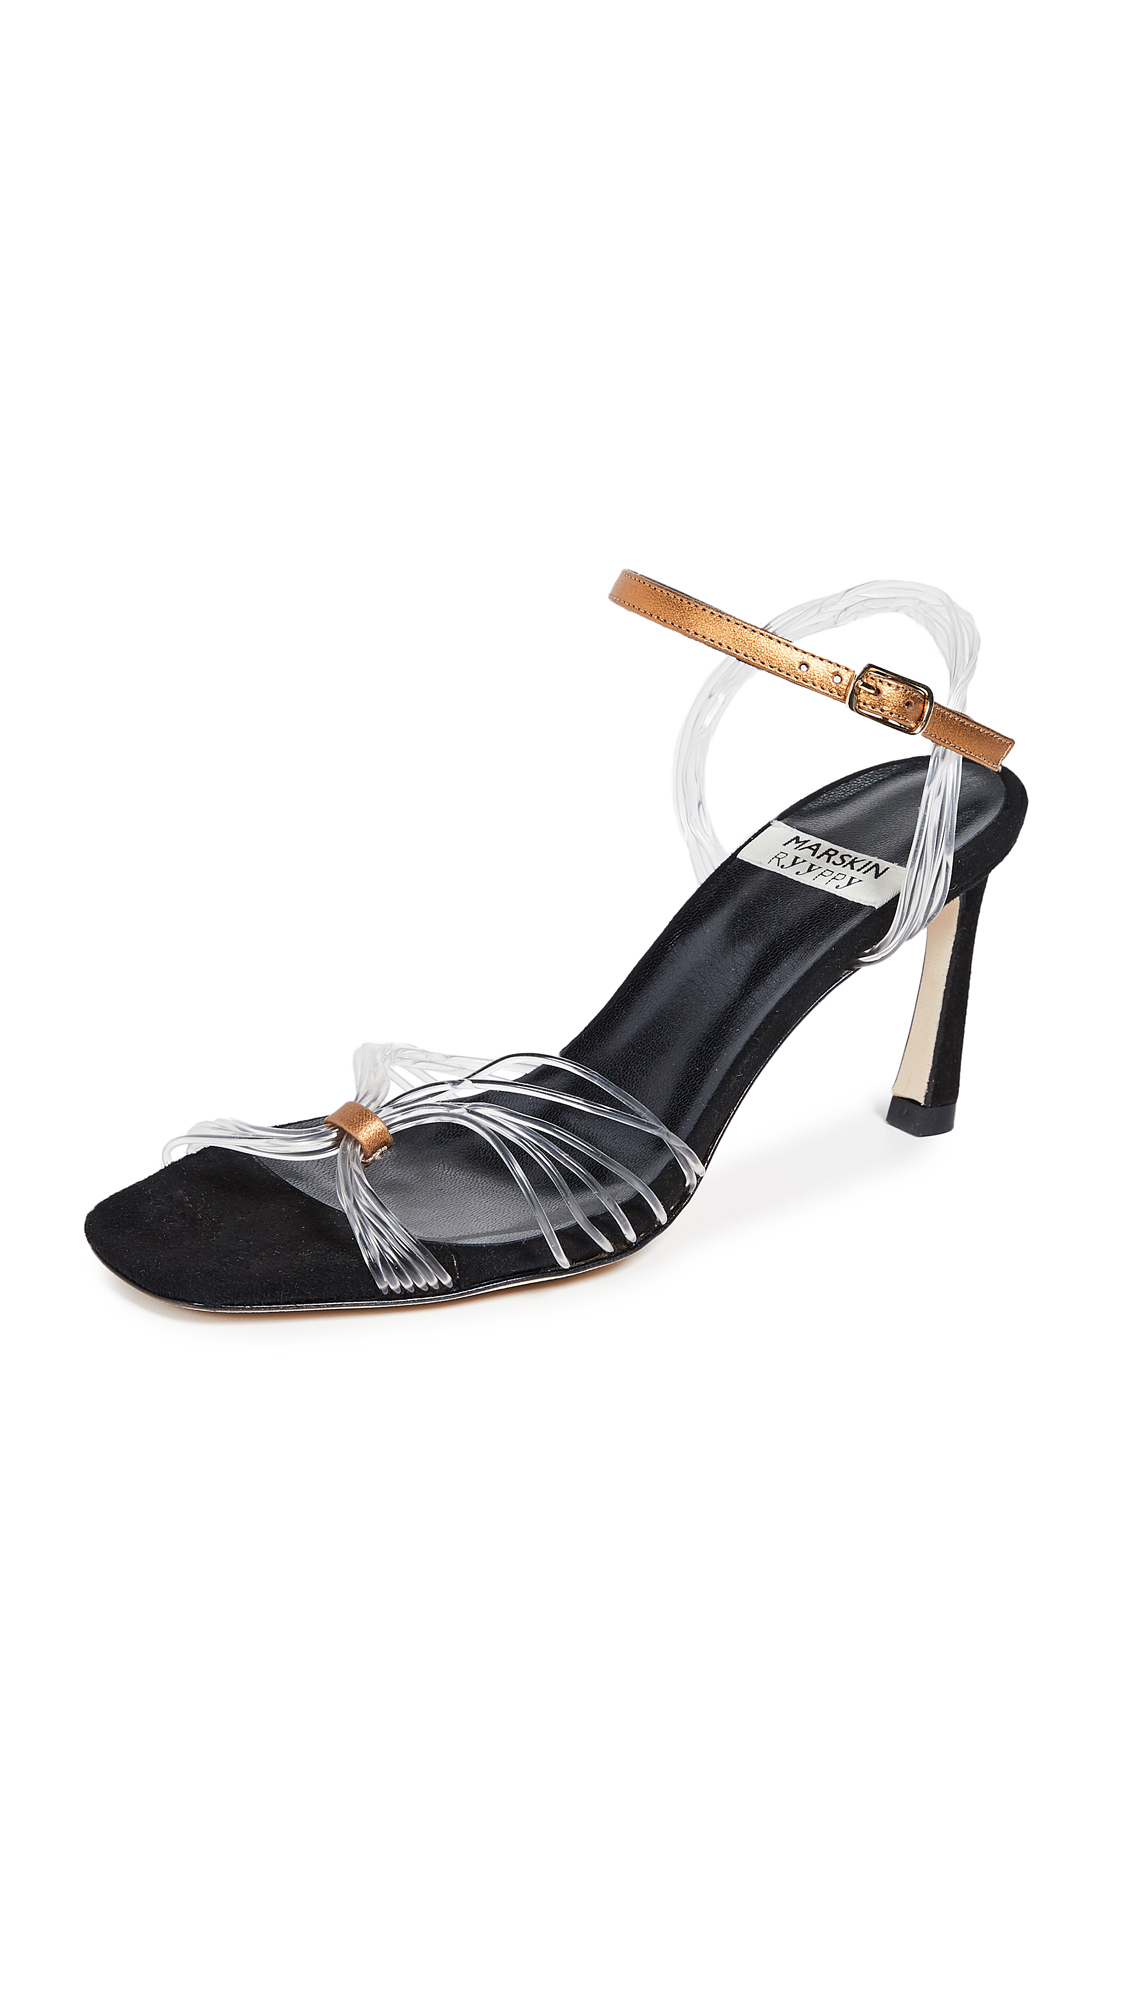 MARSKINRYYPPY Reba Sandals - Black/Gold/Transparent